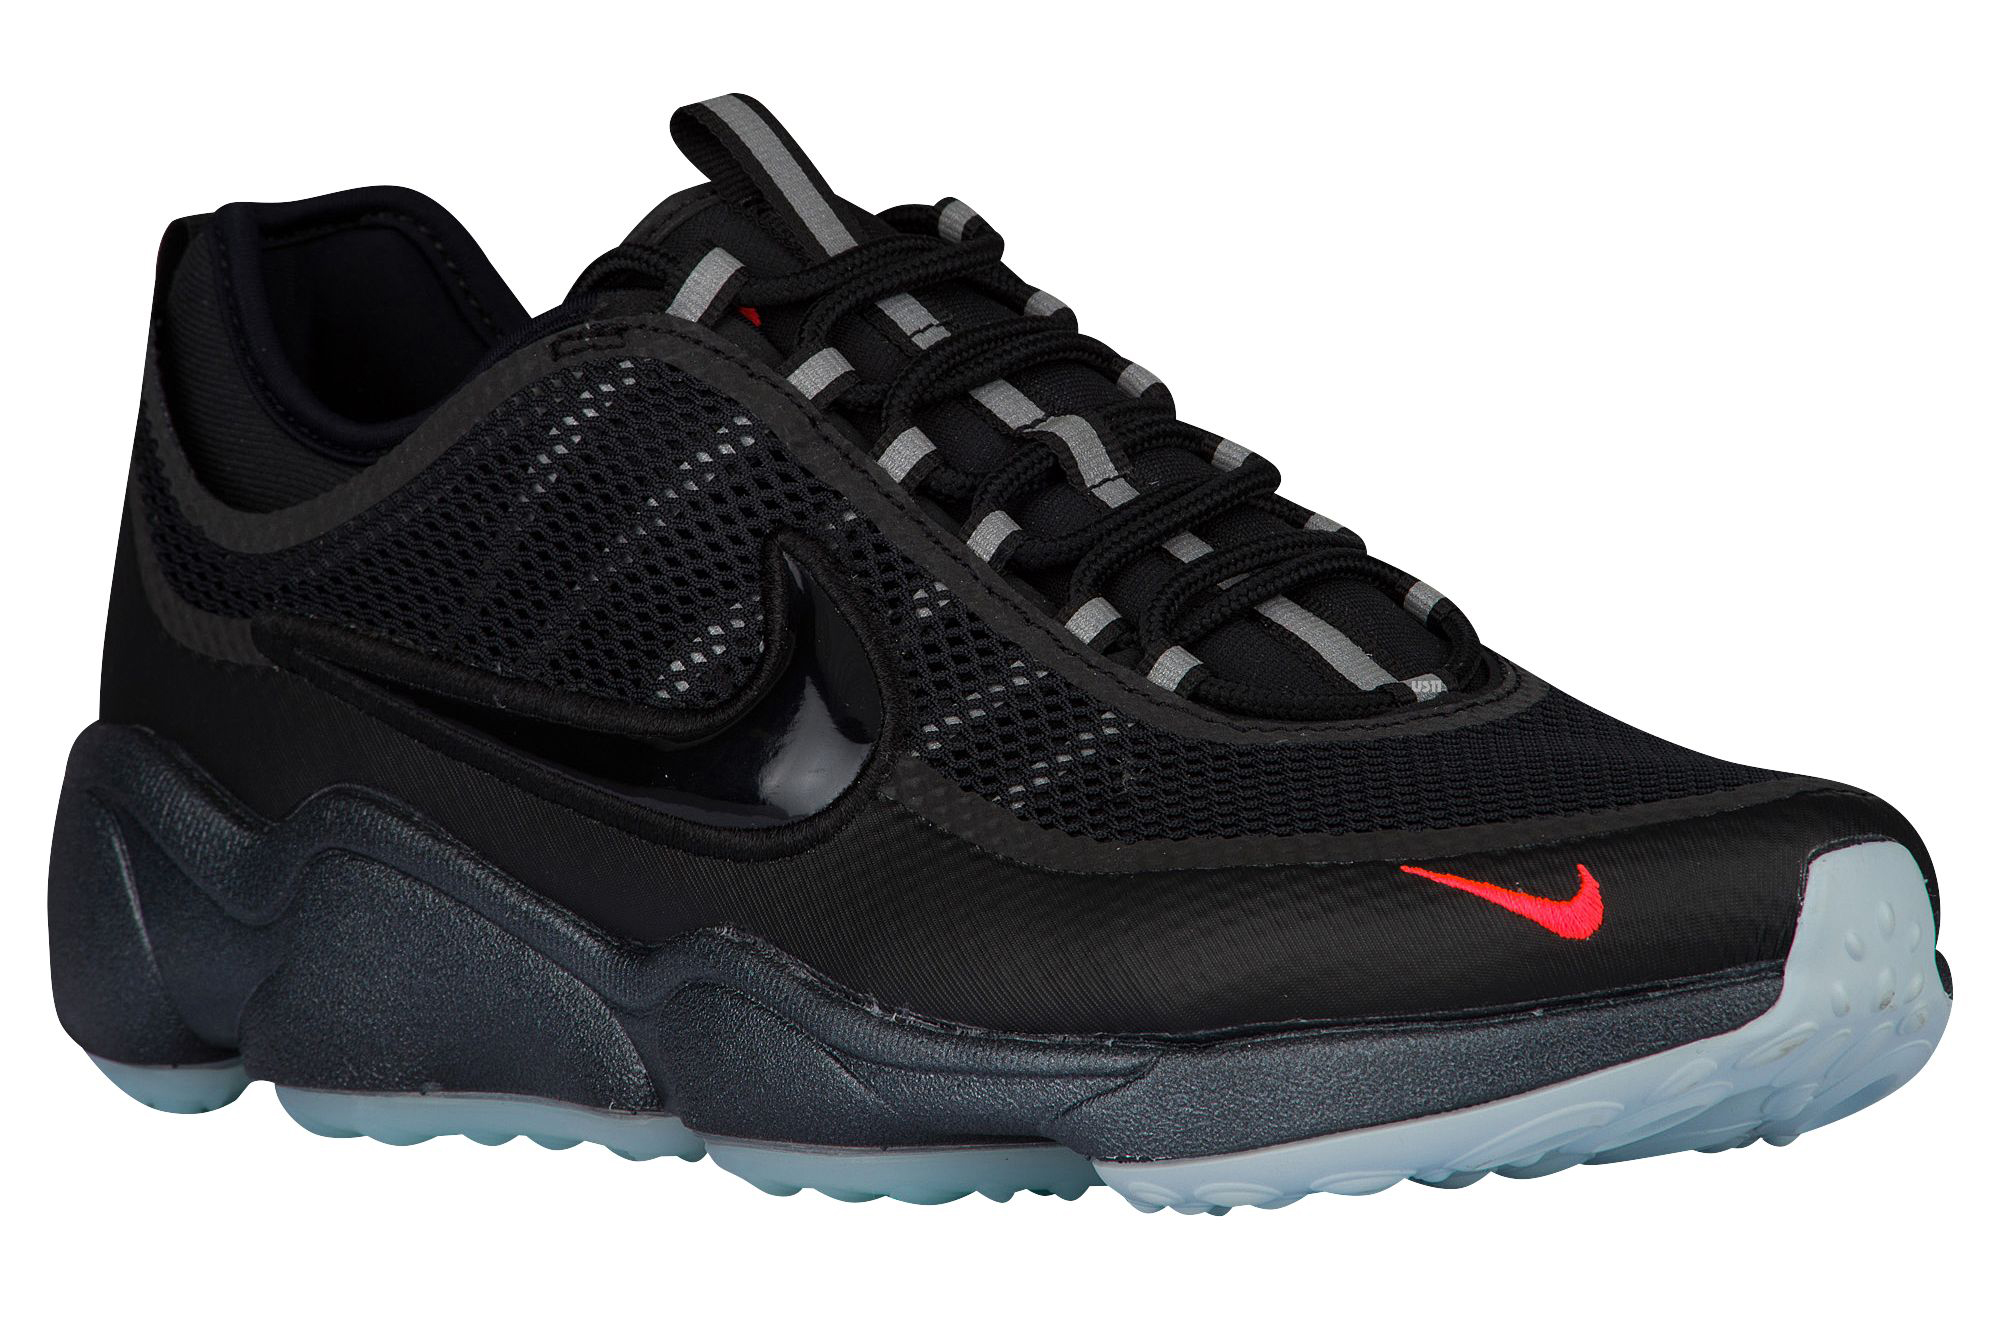 nike air zoom spiridon ultra sole collector. Black Bedroom Furniture Sets. Home Design Ideas